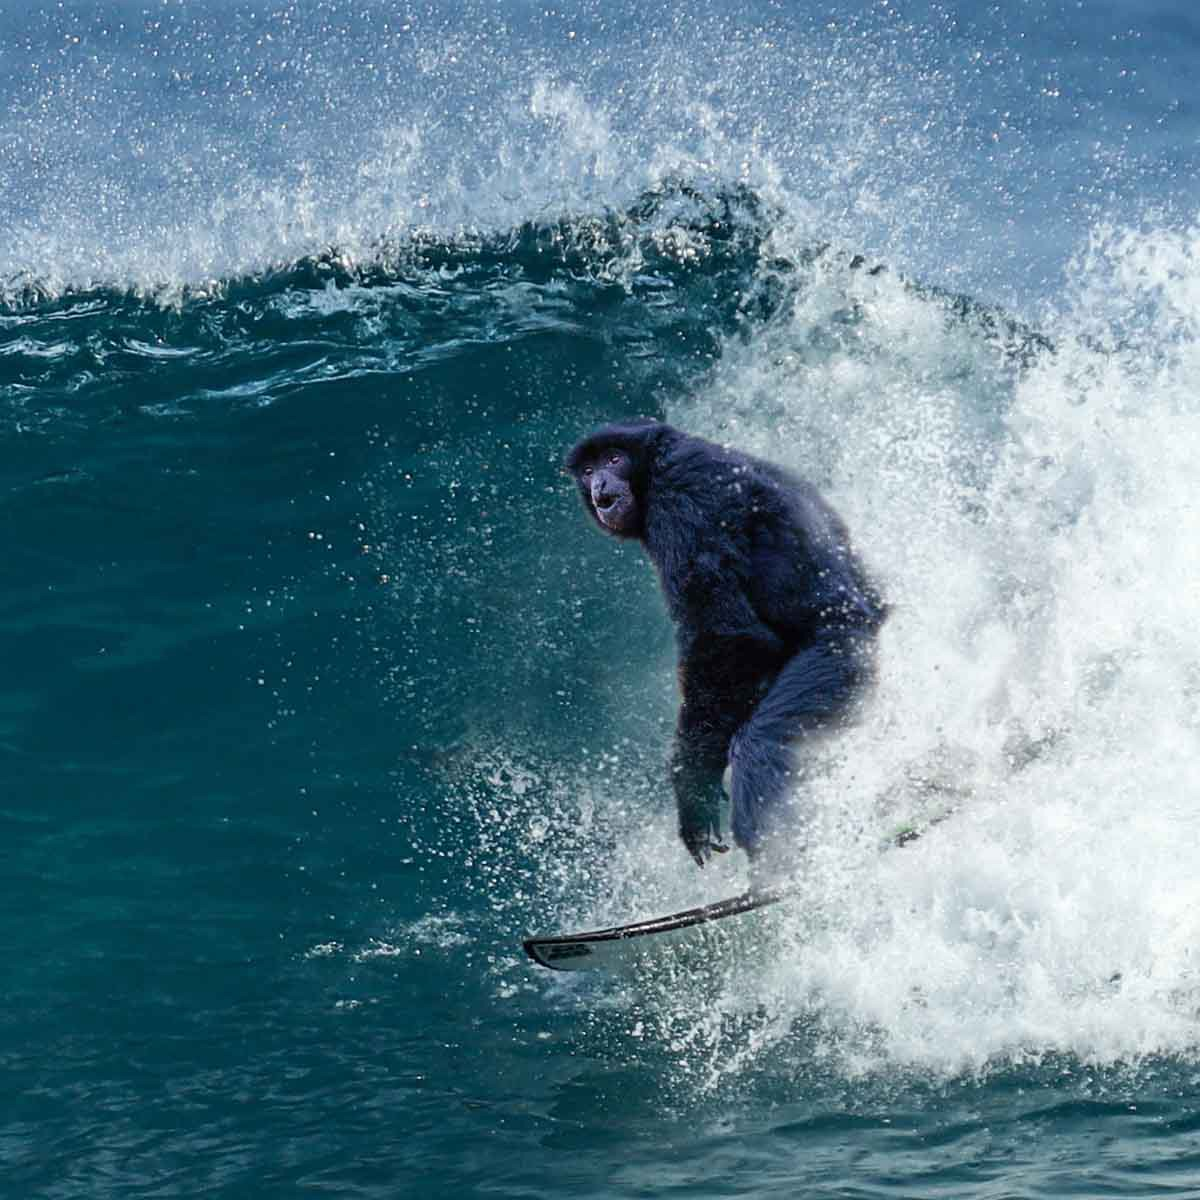 A surfing monkey